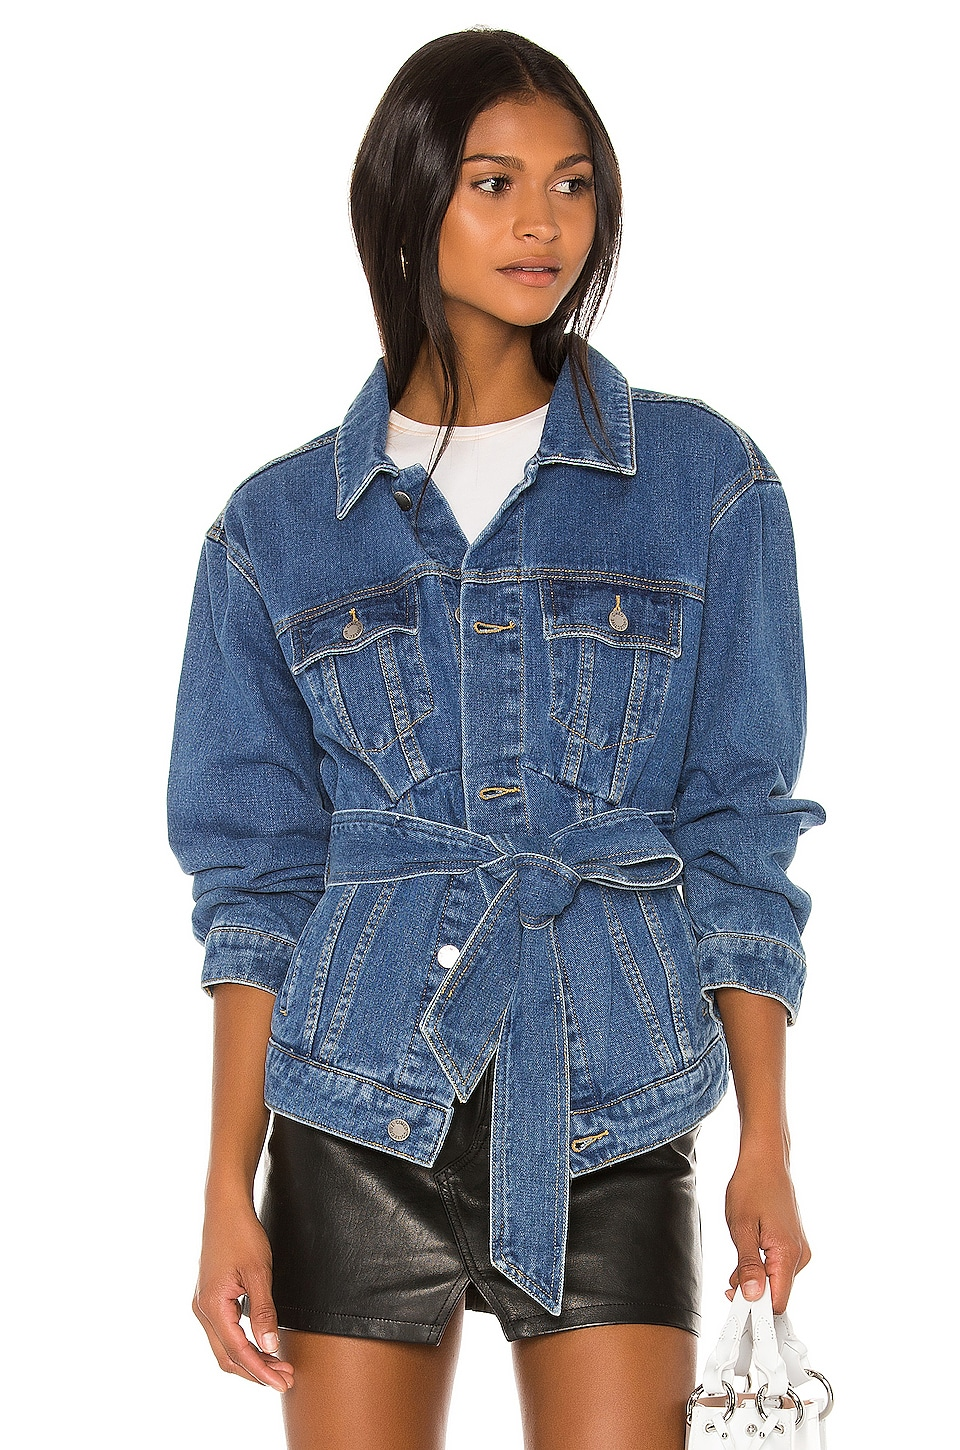 C/MEO Out Of Sight Jacket in Blue Denim